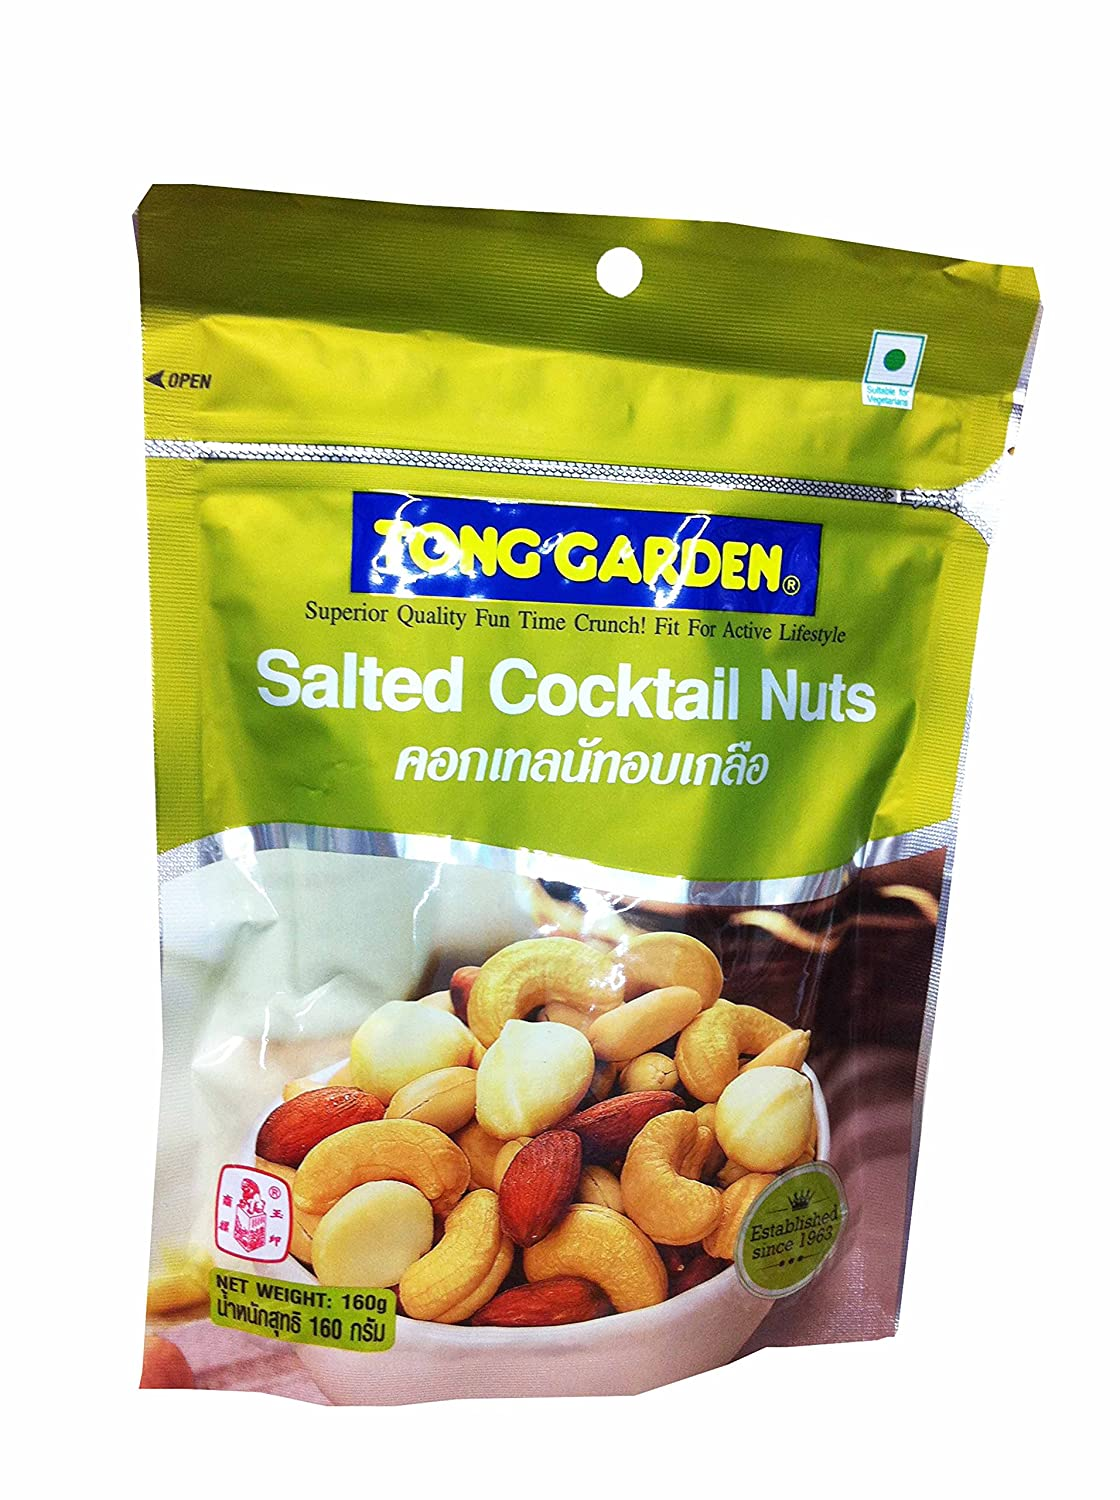 3 packs of Salted Cocktail Nuts, premium grade snack. by Tong garden. (160 g/ pack)